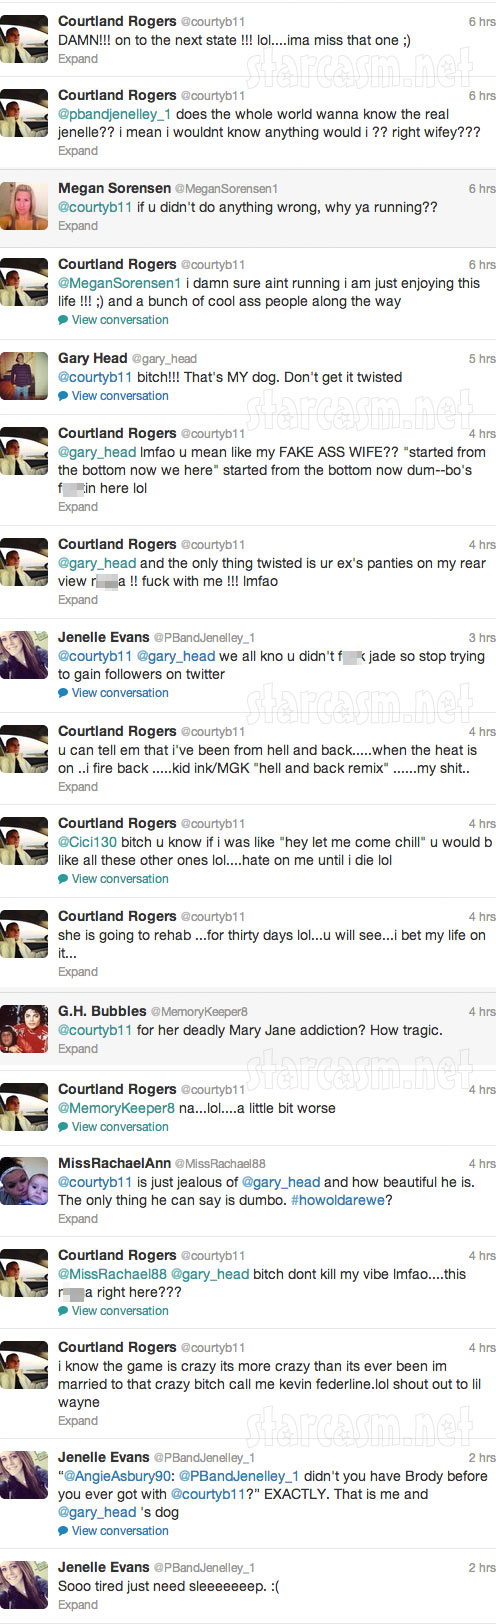 Jenelle Evans Twitter feud with Courtland Rogers 5